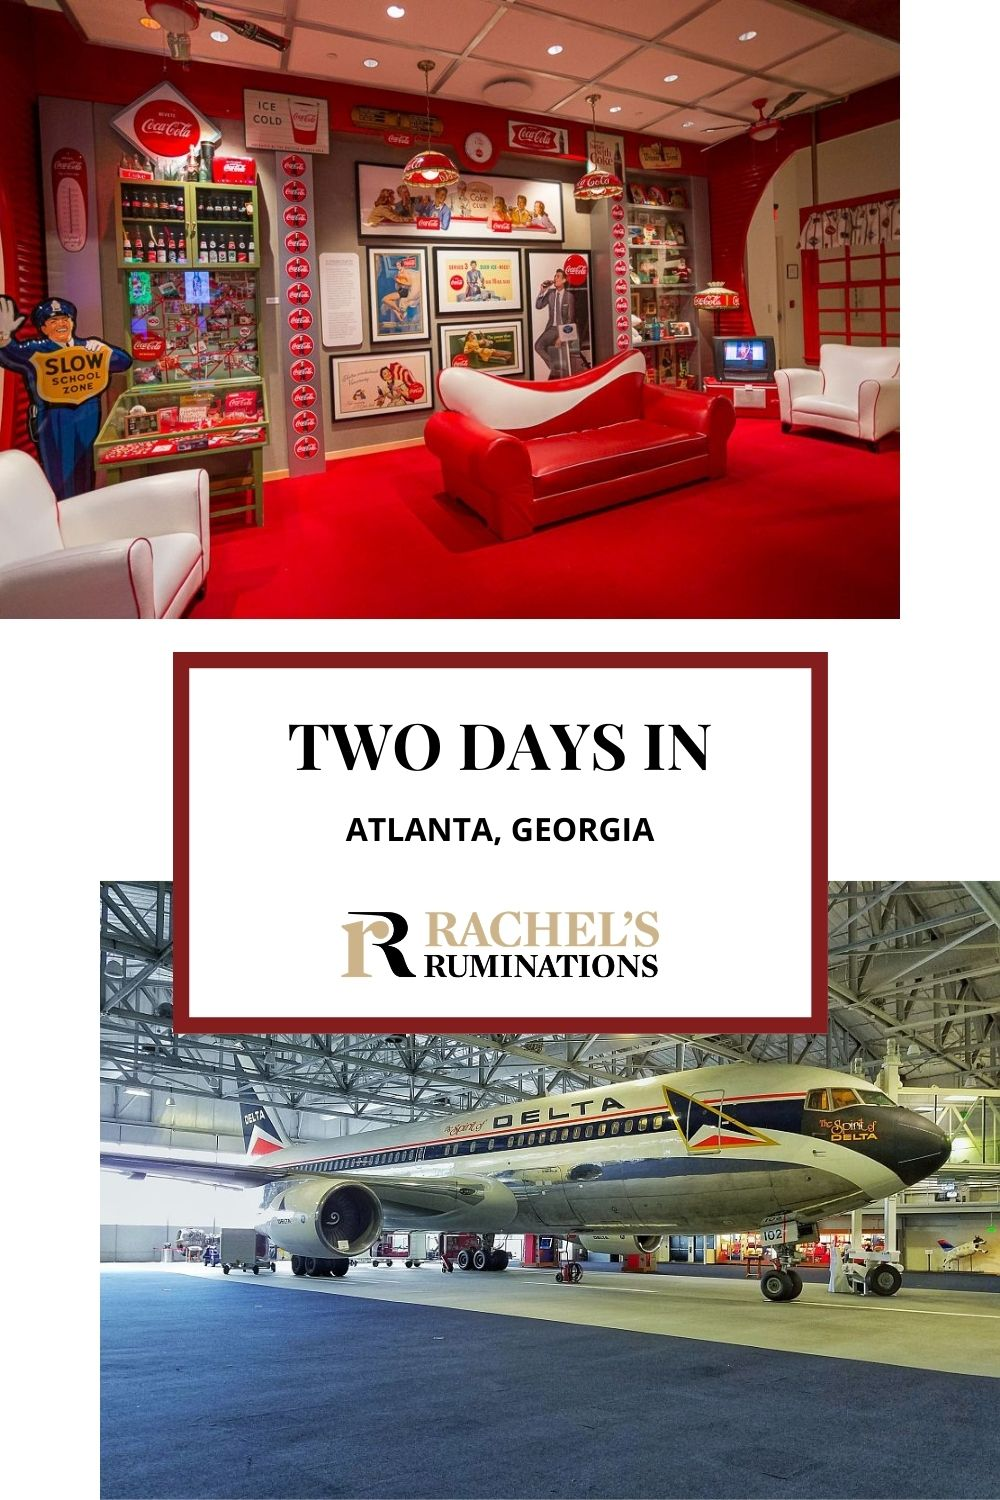 Atlanta is a modern, booming, diverse city of half a million people with a gripping history in the Civil Rights struggle. Here's what I'd see in a weekend in Atlanta! via @rachelsruminations